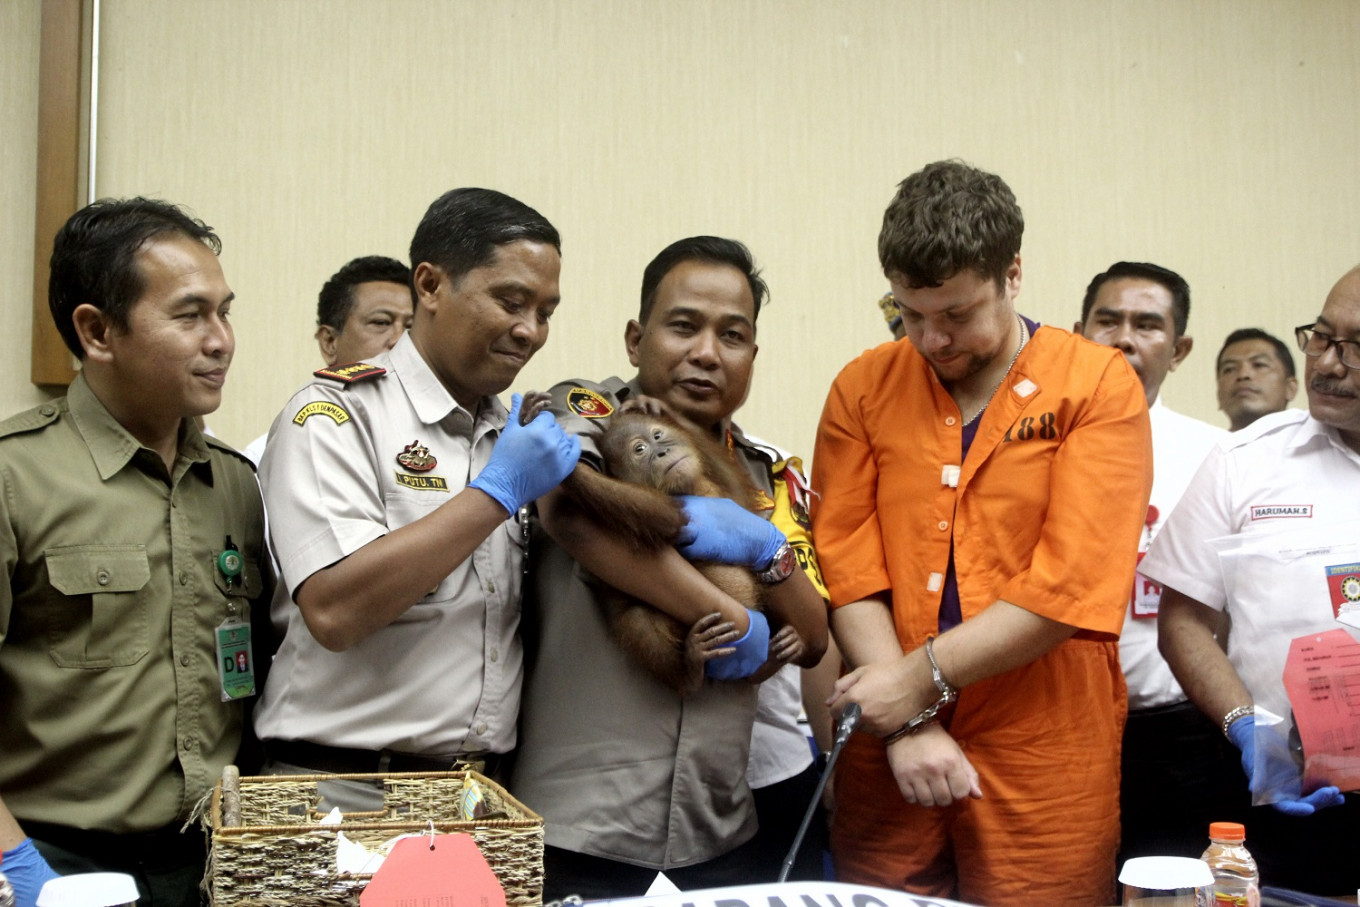 Russian faces 5 years in prison for trying to smuggle baby orangutan